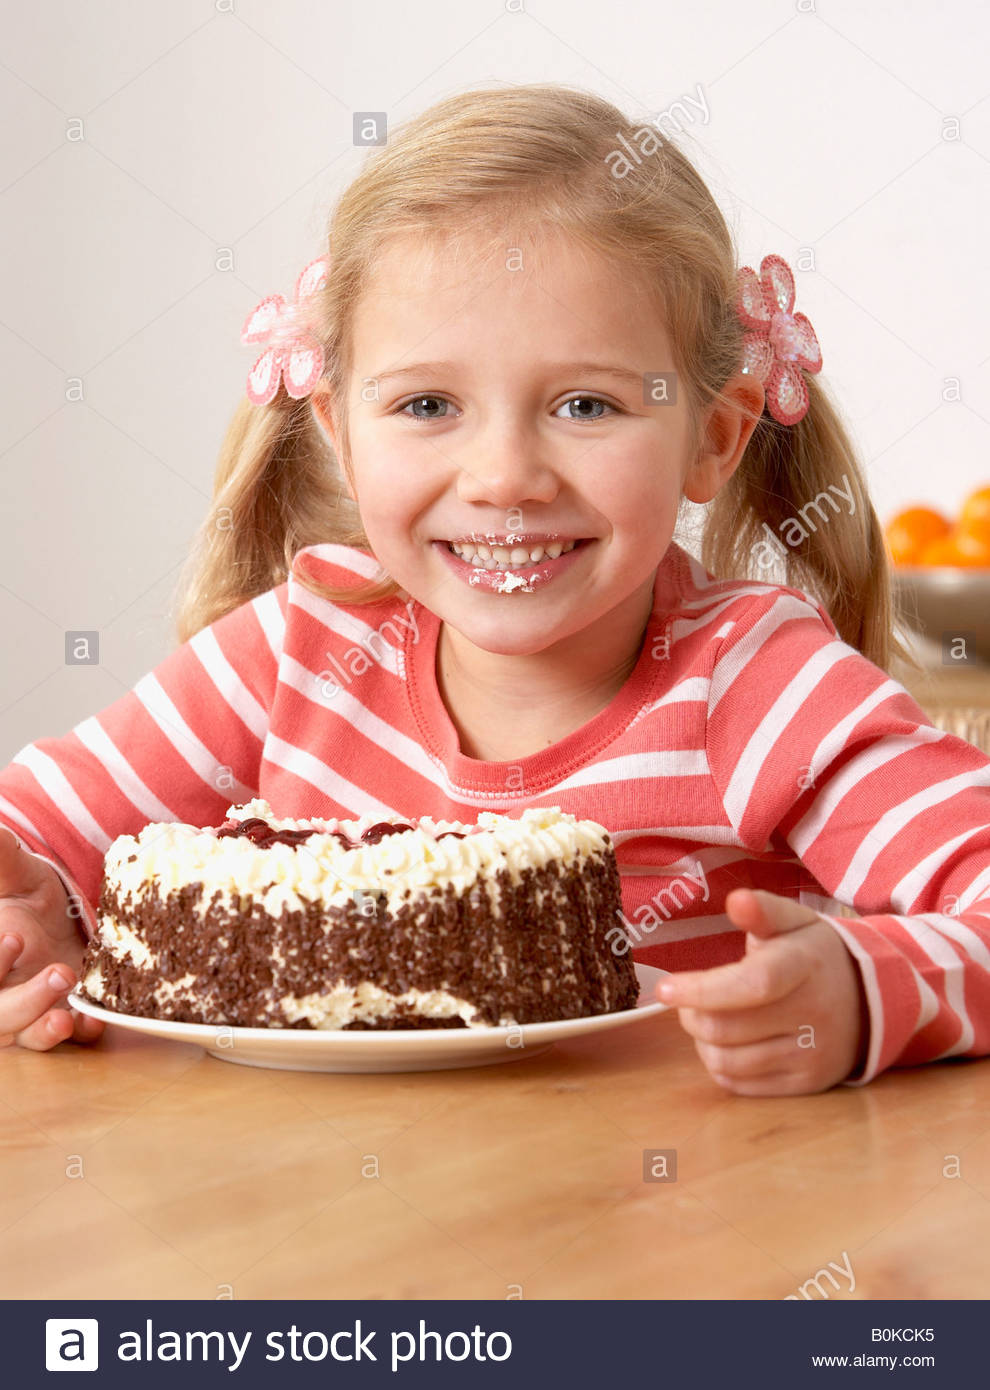 Young girl in kitchen eating cake and making a mess smiling - Stock Image